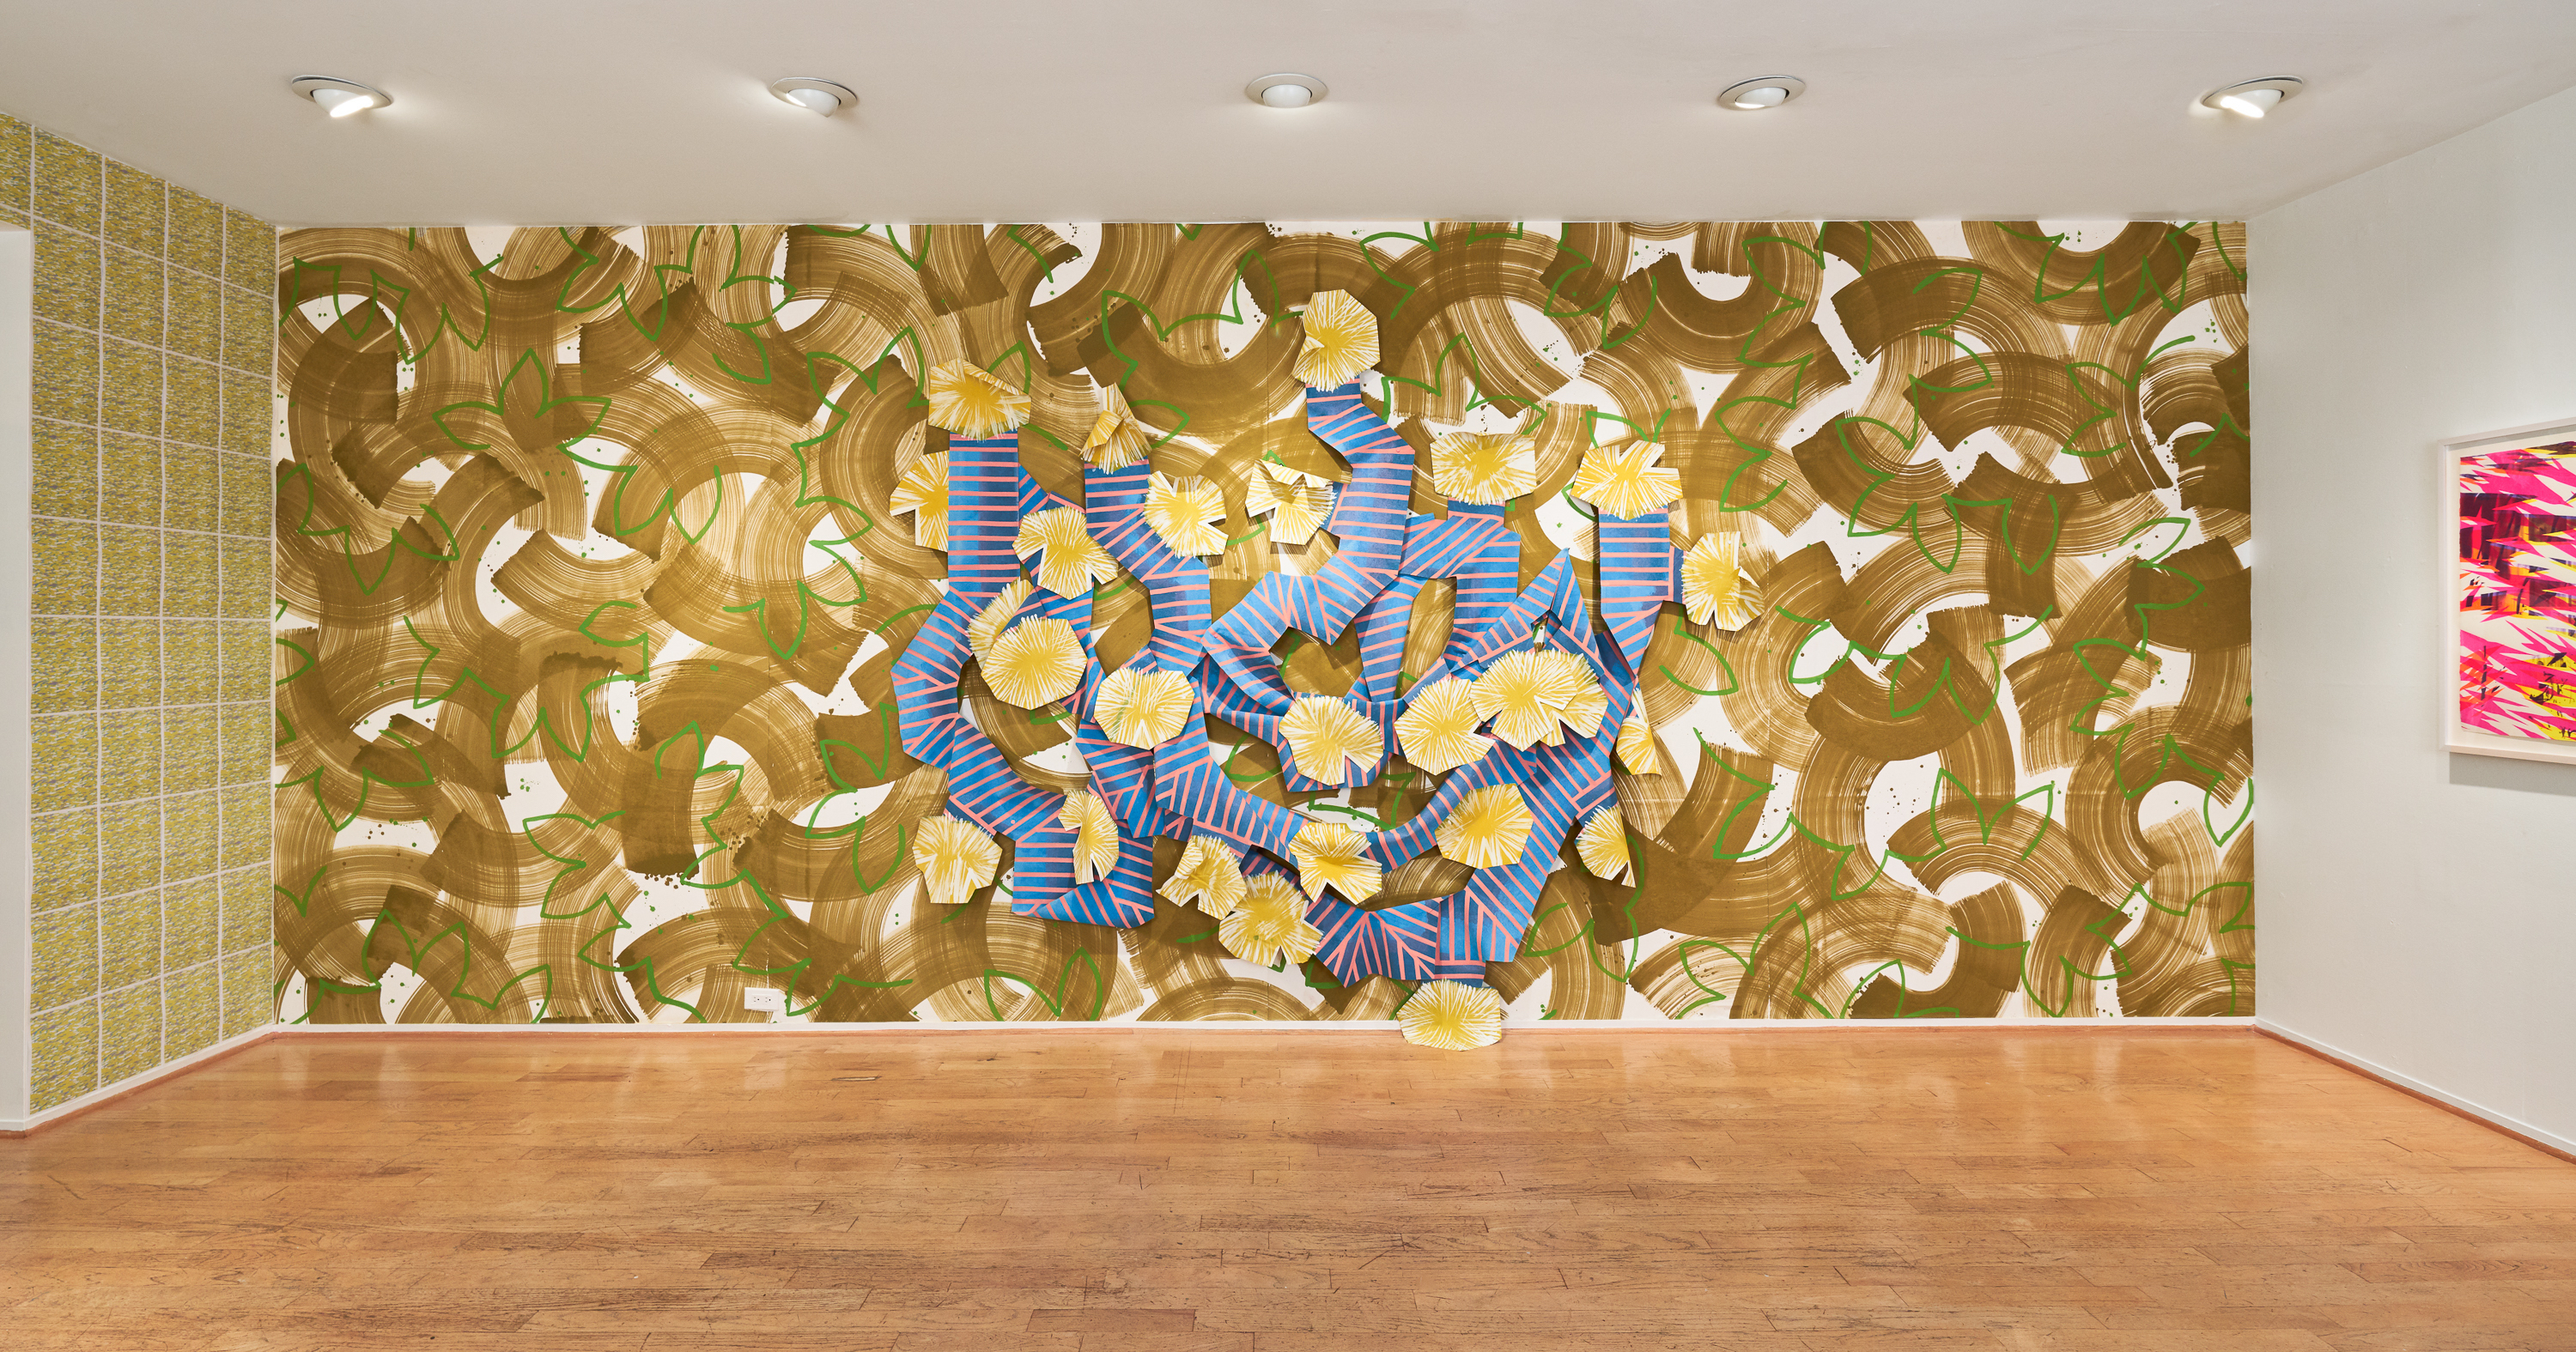 Sloppy Espalier, 2018; Installation for MILIEU: Erin Harmon and Devon Tsuno, LAUNCH, Los Angeles; Painted muslin wall covering, painted and cut muslin garland, wood blocks, painted magnets Approx. 670.56cm x 274.32cm